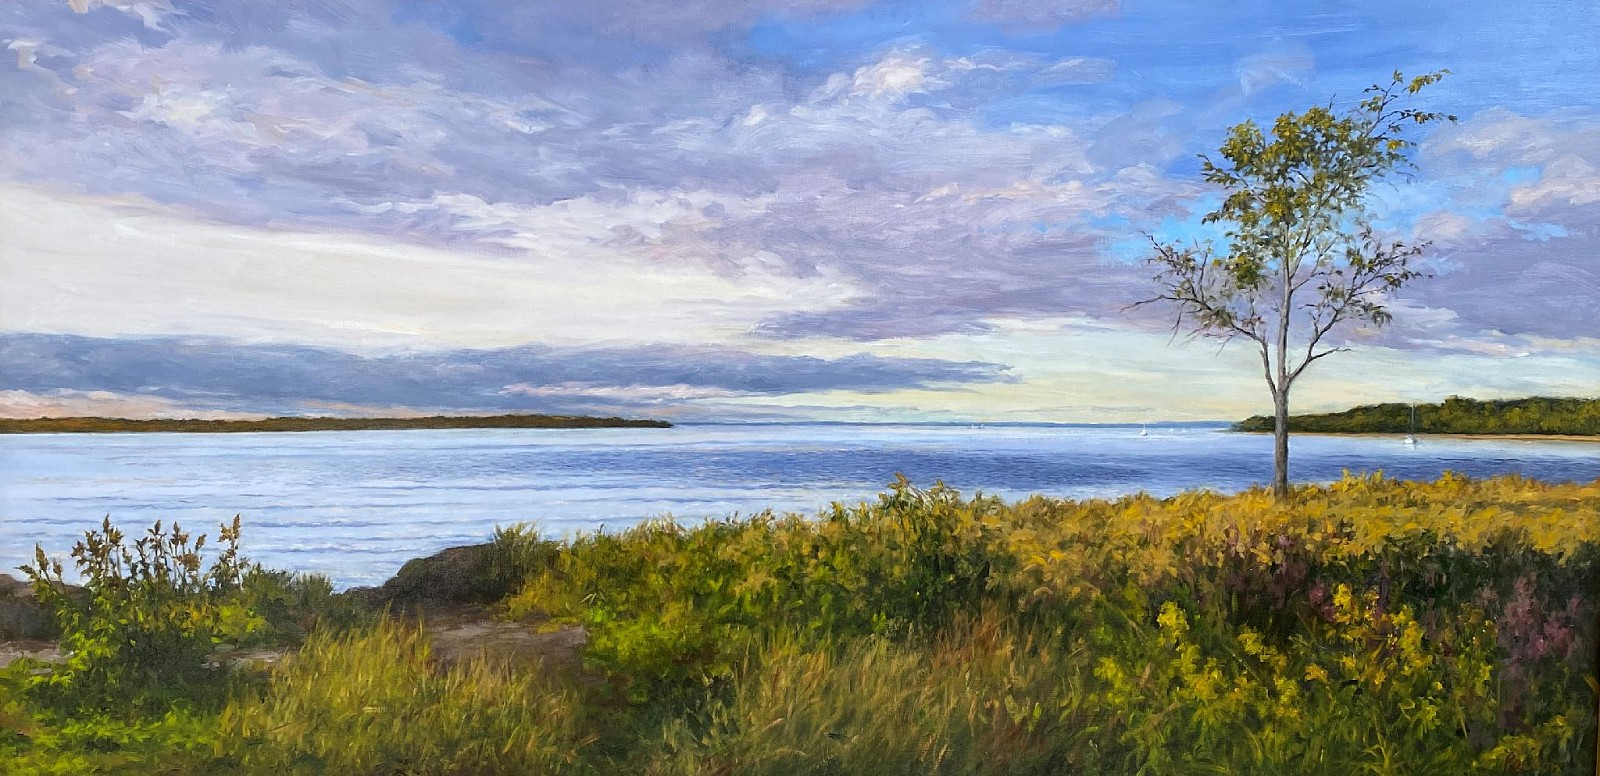 David Peikon ,   Fall View of the Harbor  ,  2017     oil on canvas ,  24 x 48 in. (61 x 121.9 cm)     DP191102